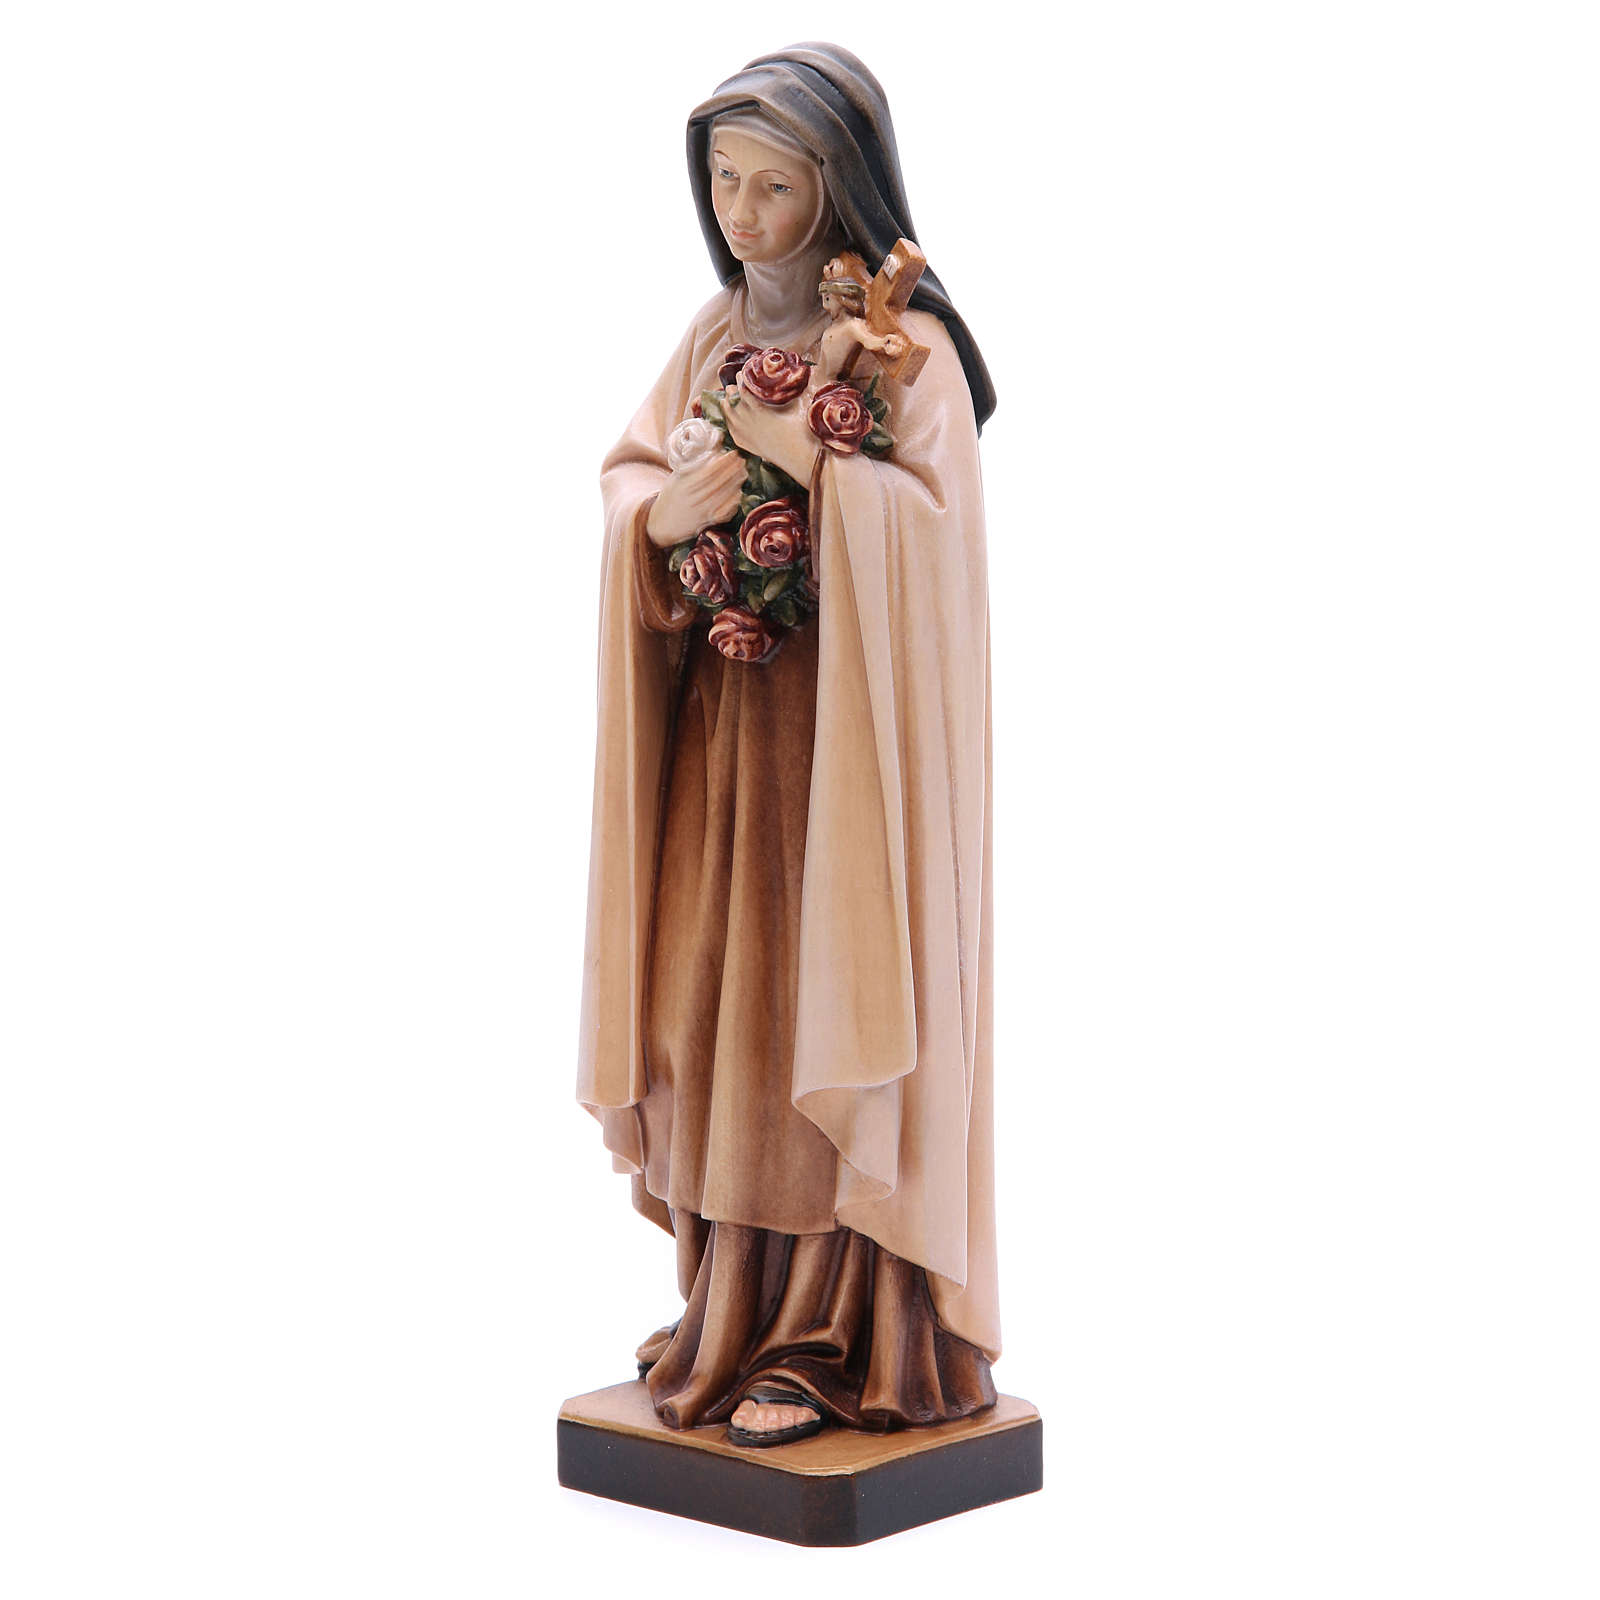 Saint Therese of Lisieux 4